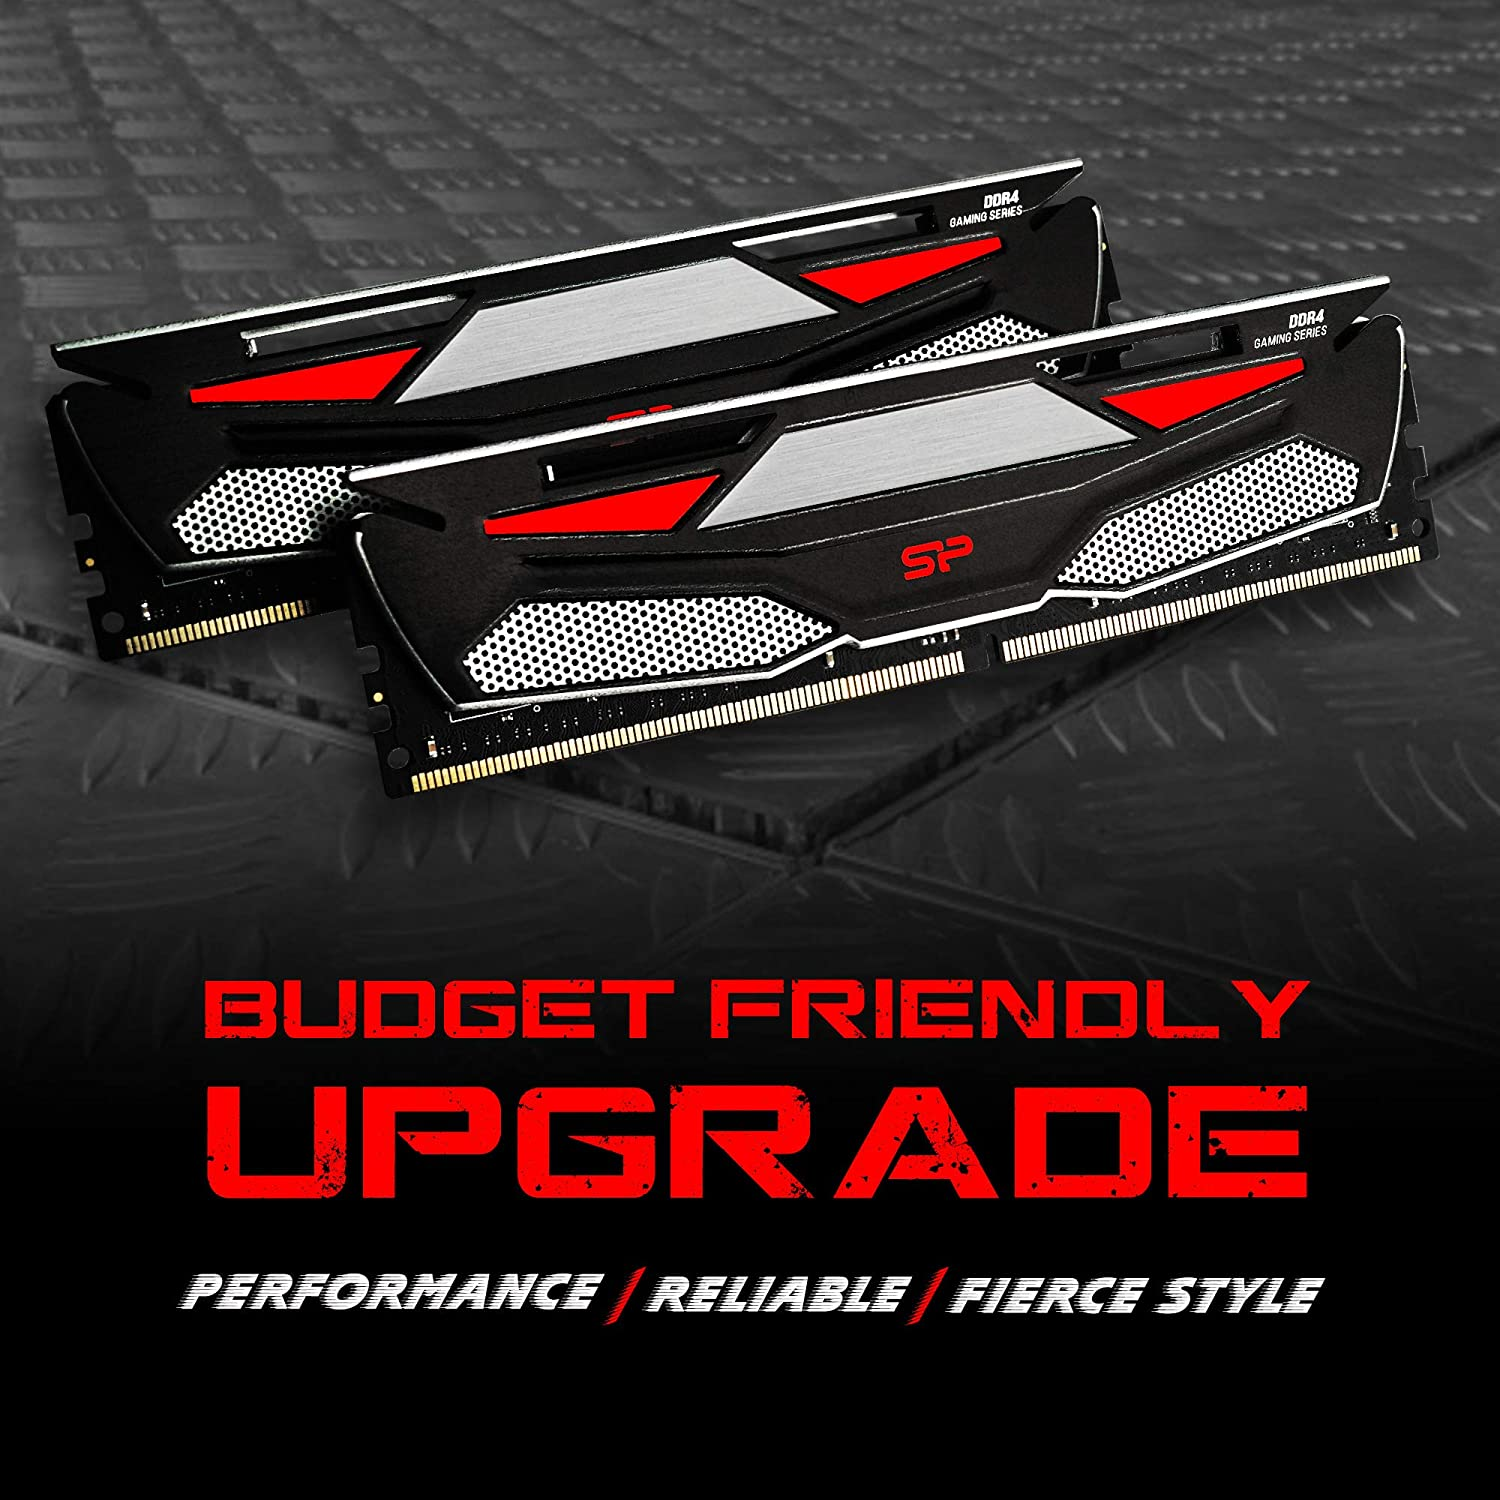 288-pin CL16 1.35V UDIMM Desktop Memory Module RAM 3200MHz PC4 25600 Low Voltage 8GBx2 Silicon Power Gaming Series DDR4 16GB